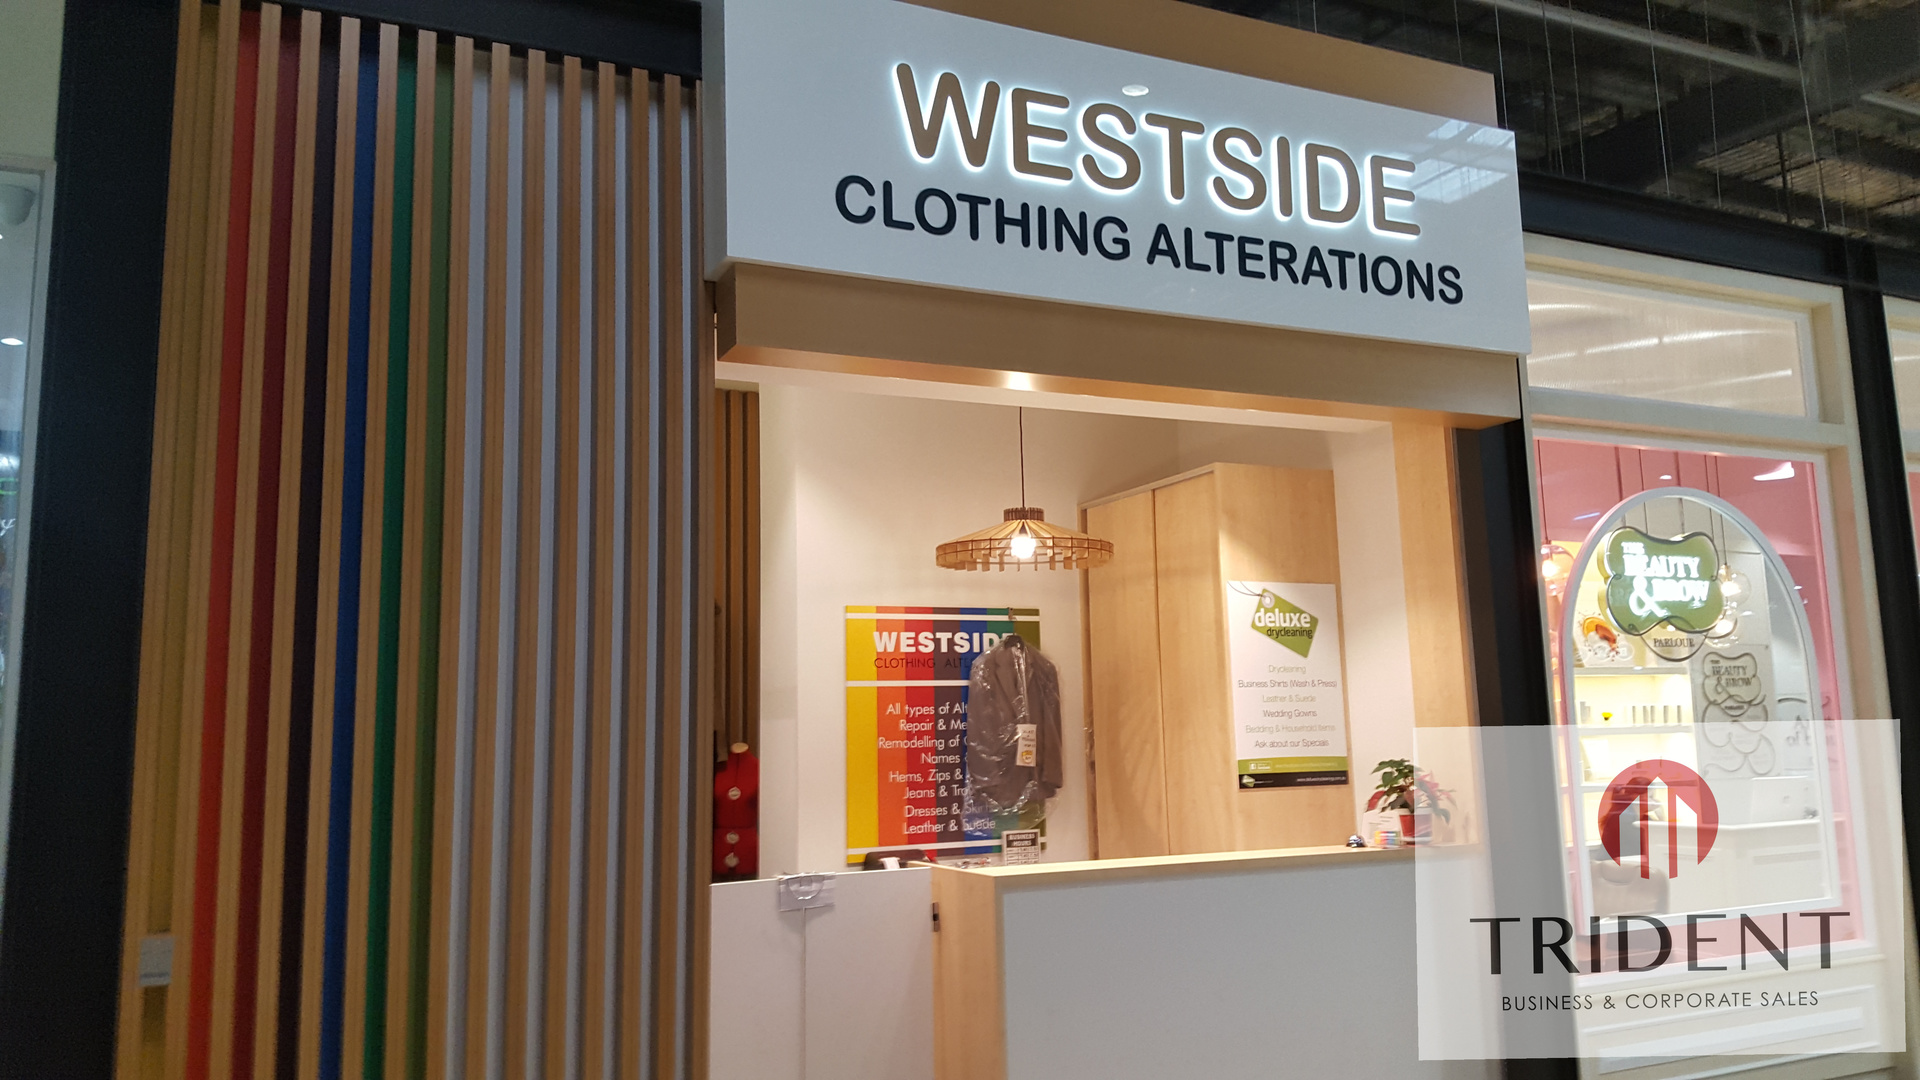 Clothing Alterations Business - Western Suburbs Area